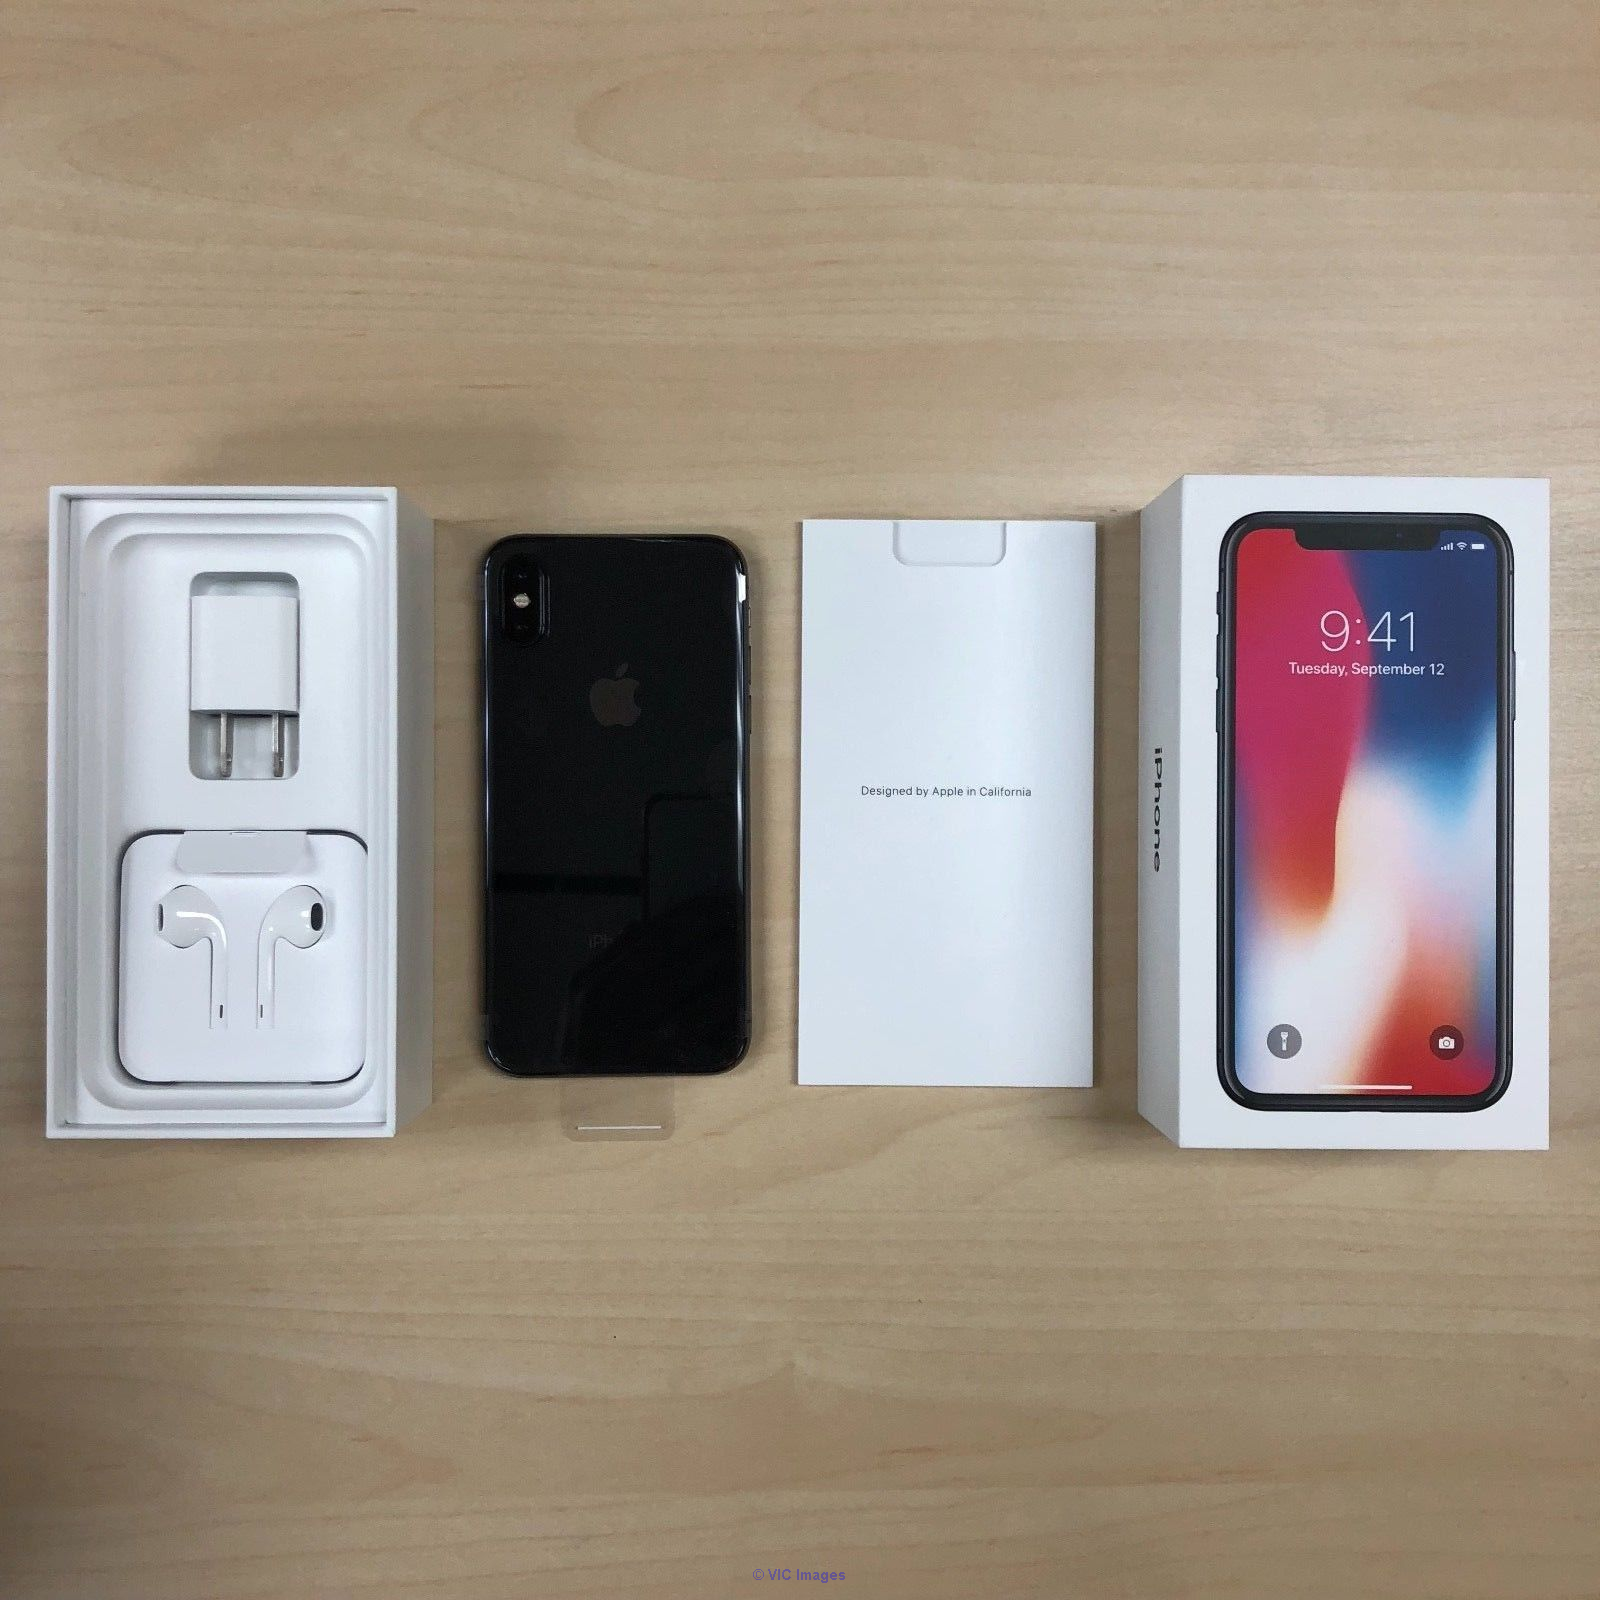 Apple iPhone X 256GB and Samsung Galaxy S9/9Plus Available Calgary, Alberta, Canada Classifieds